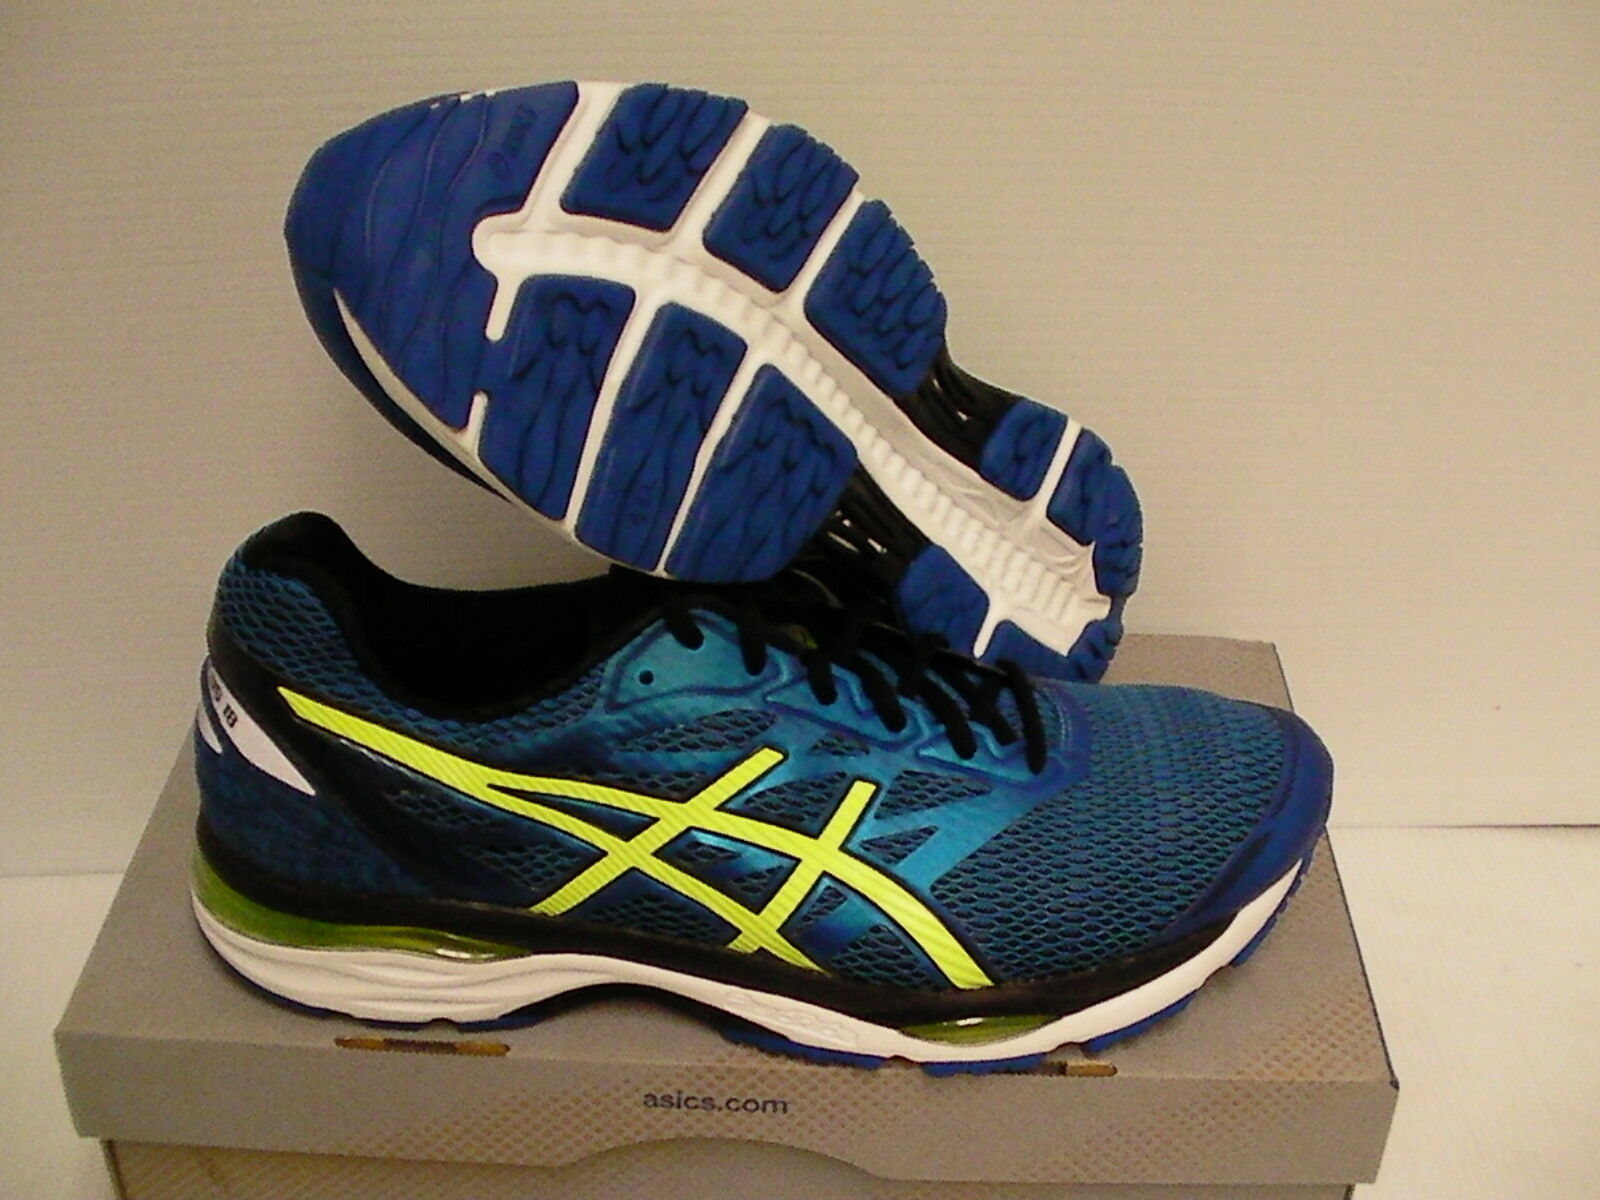 Mens Mens Mens Asics running shoes gel cumulus 18 imperial safety yellow size 12.5 us 859366